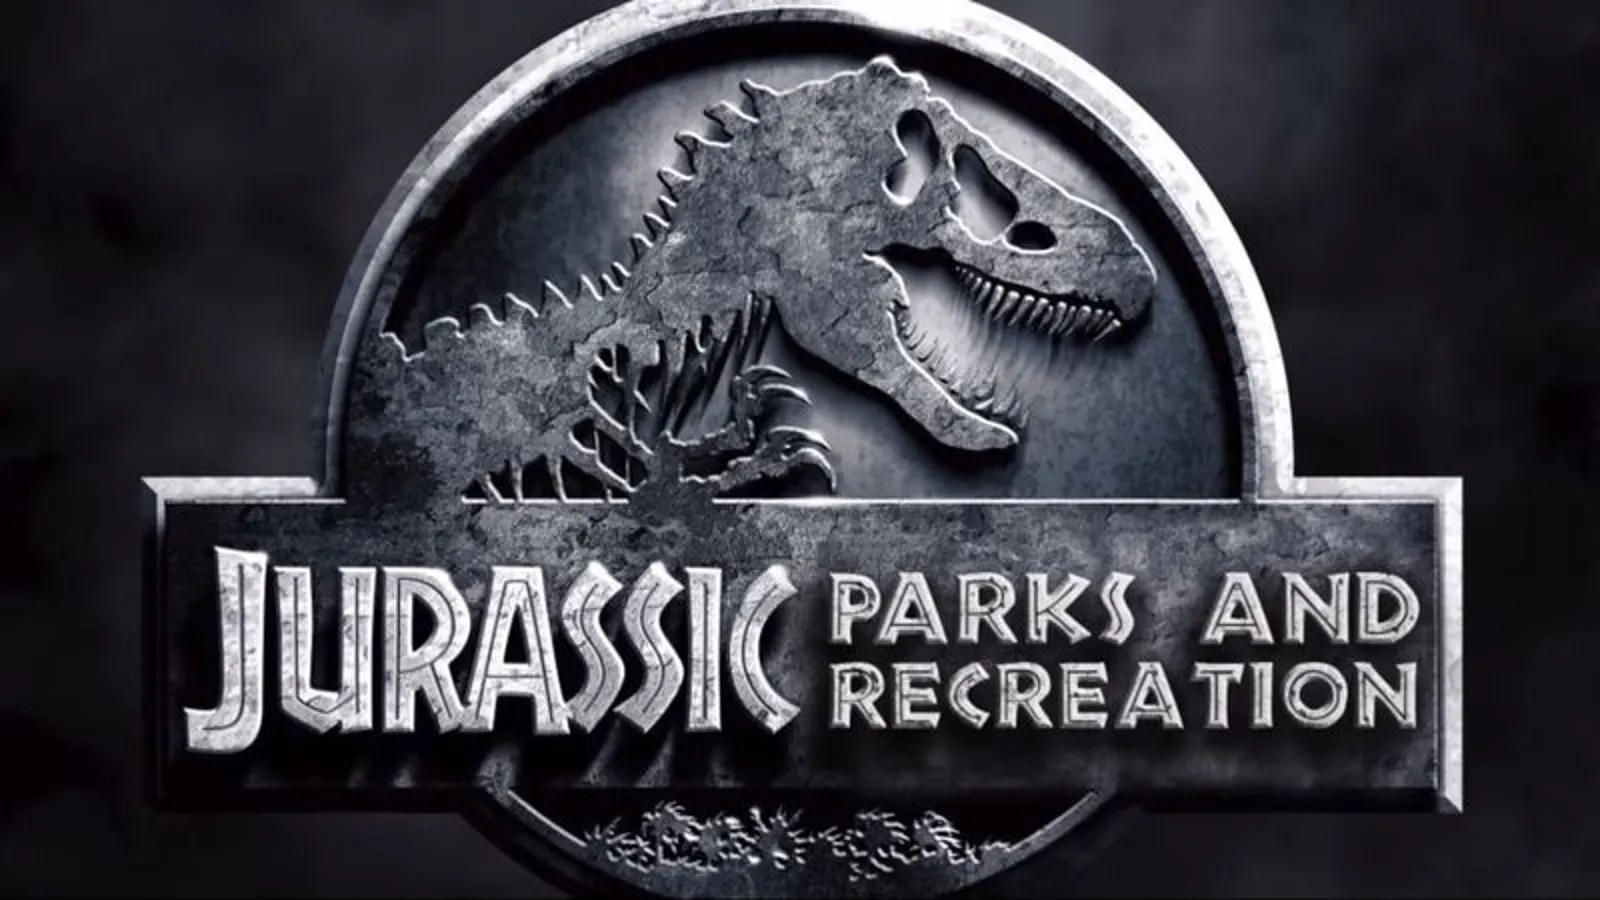 Jurassic Parks And Recreation Finally Puts Andy Dwyer In Charge Of Dinosaurs